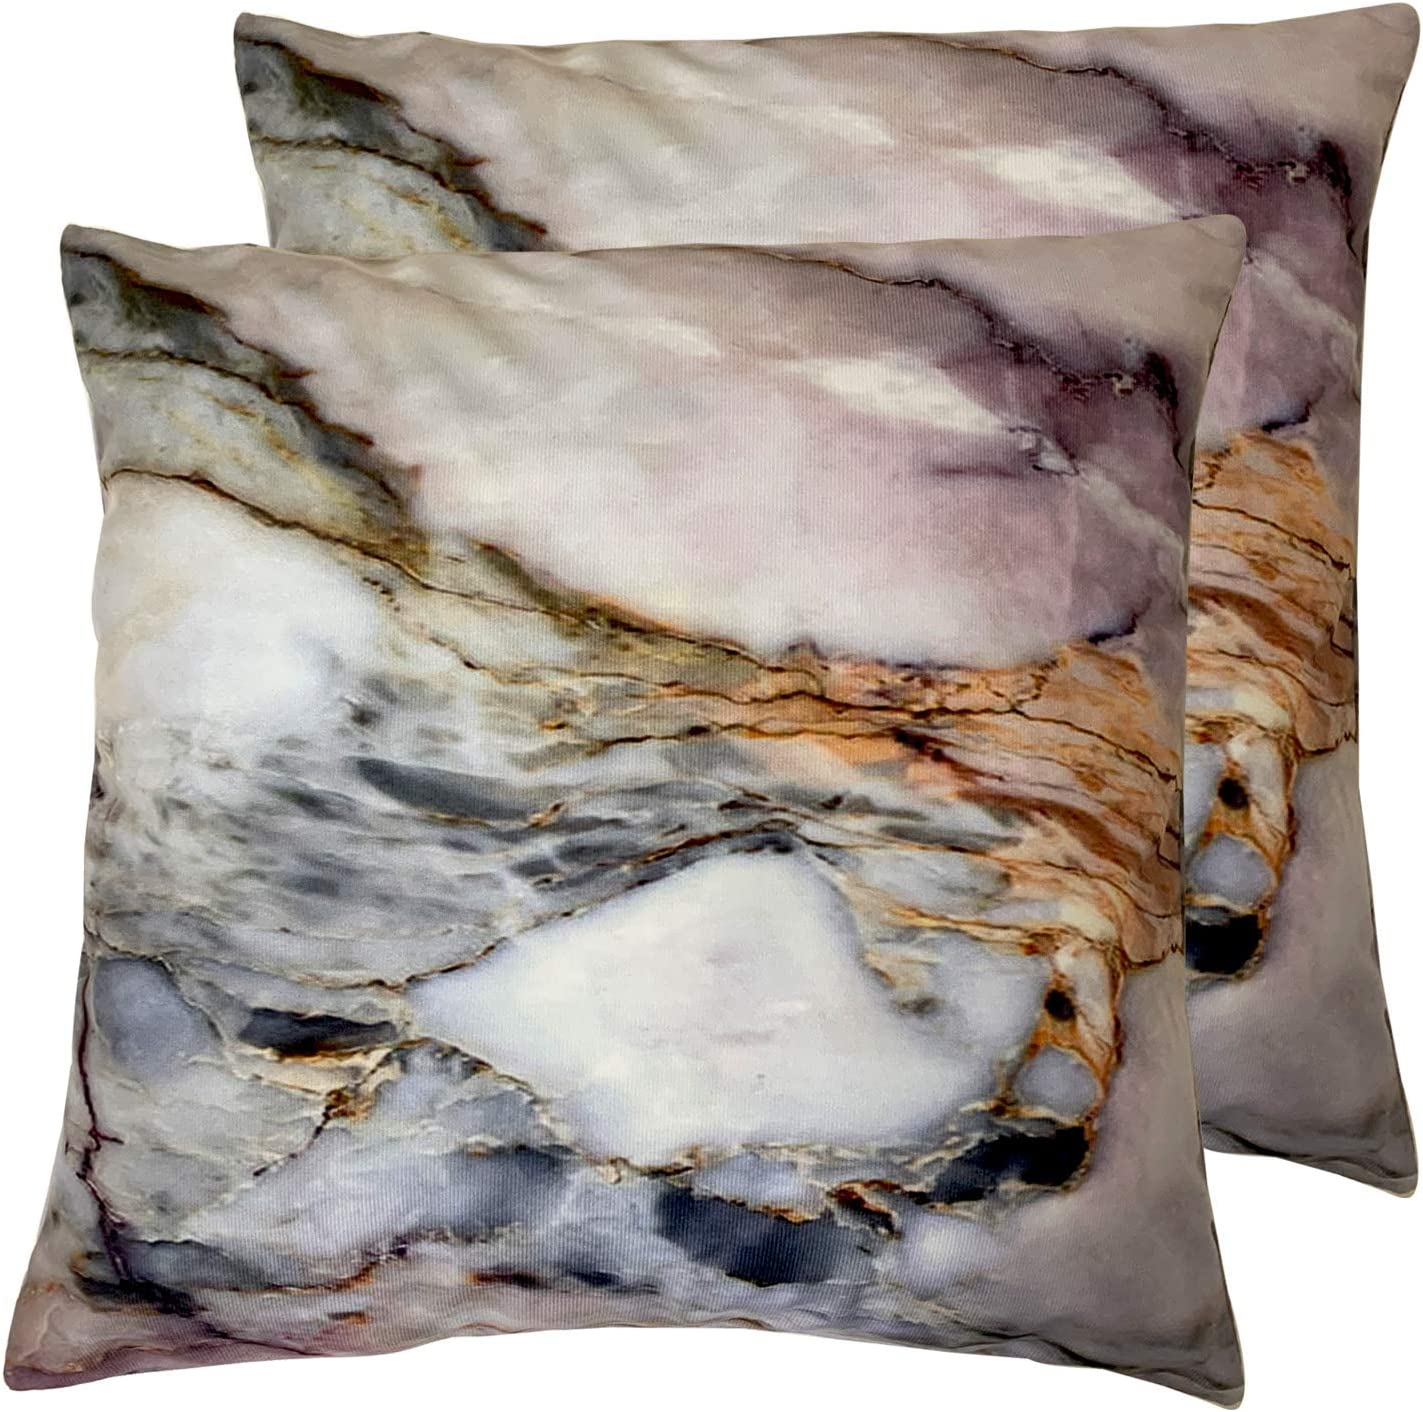 Set of 2 Square 18X18 inch Throw Pillow Cover for Women/Men, Short Plush Pillow Case Cushion Cover for Home Sofa Couch Living Room Car Decor - Pink Grey White Marble